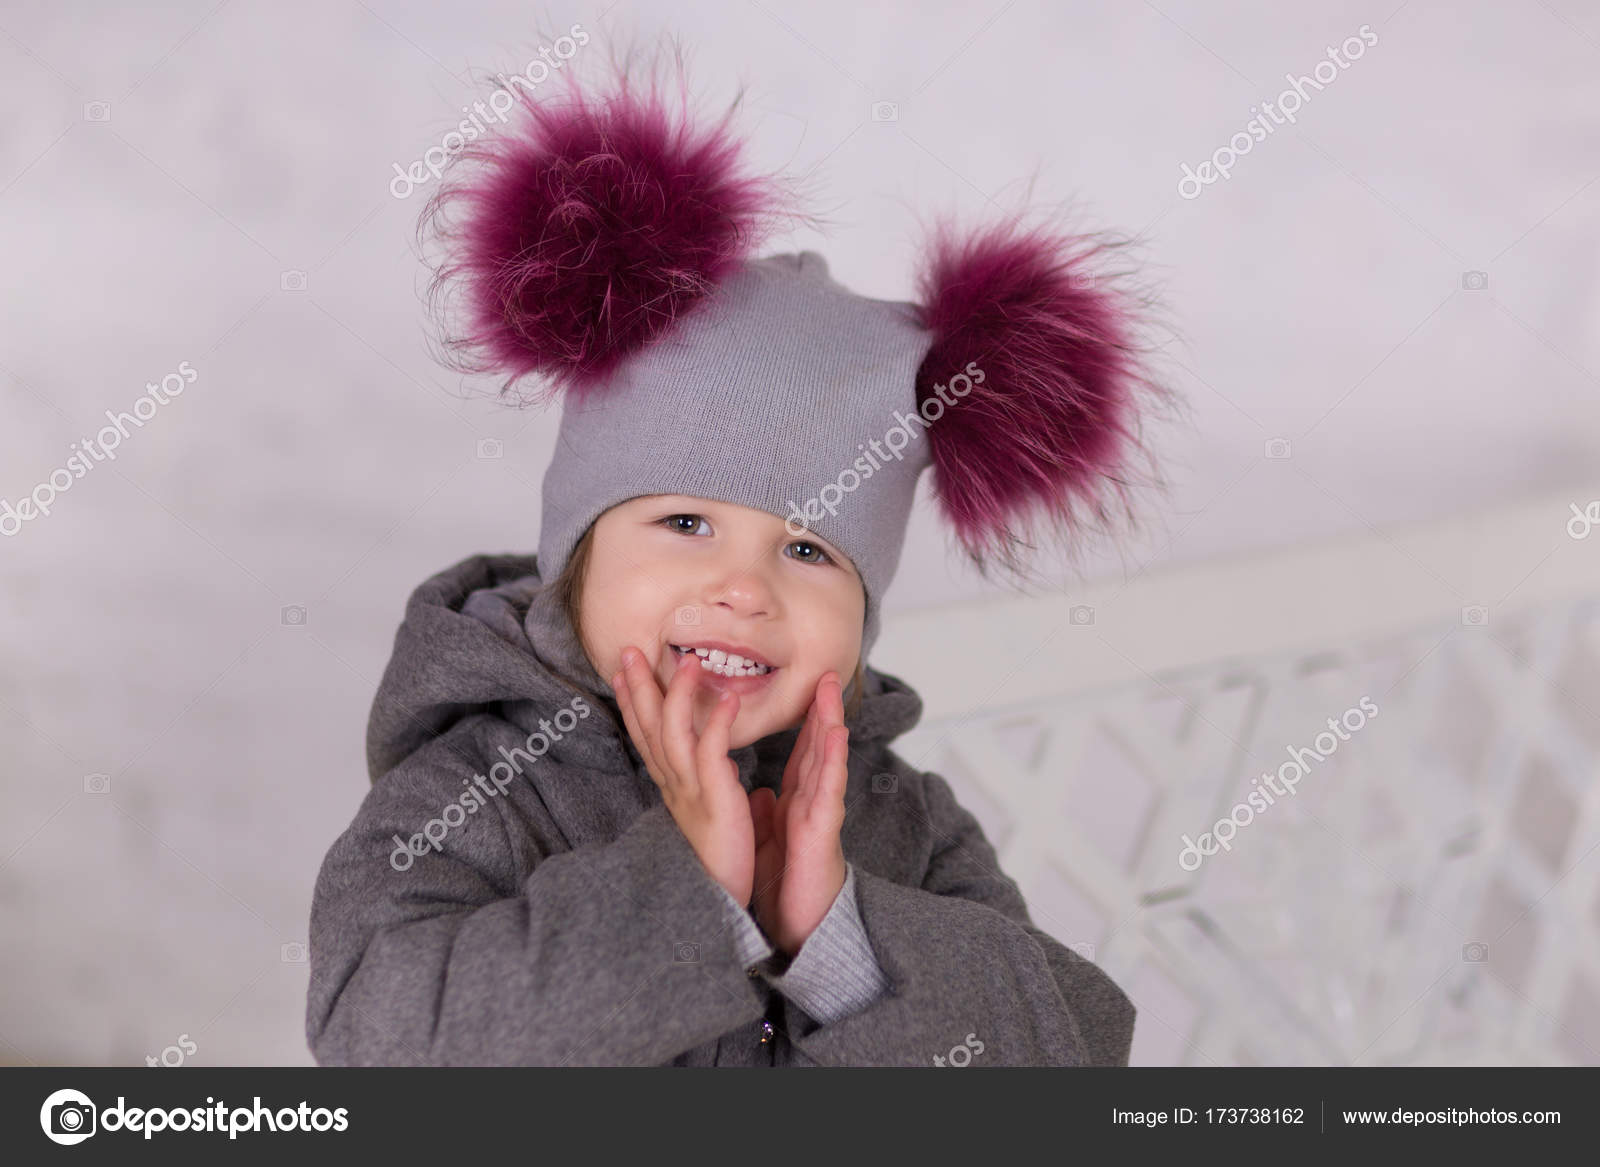 a4c365f3846fb Pretty girl with brunnete hair stylish dressed in gray jacket and warm  winter hat happyly smiling